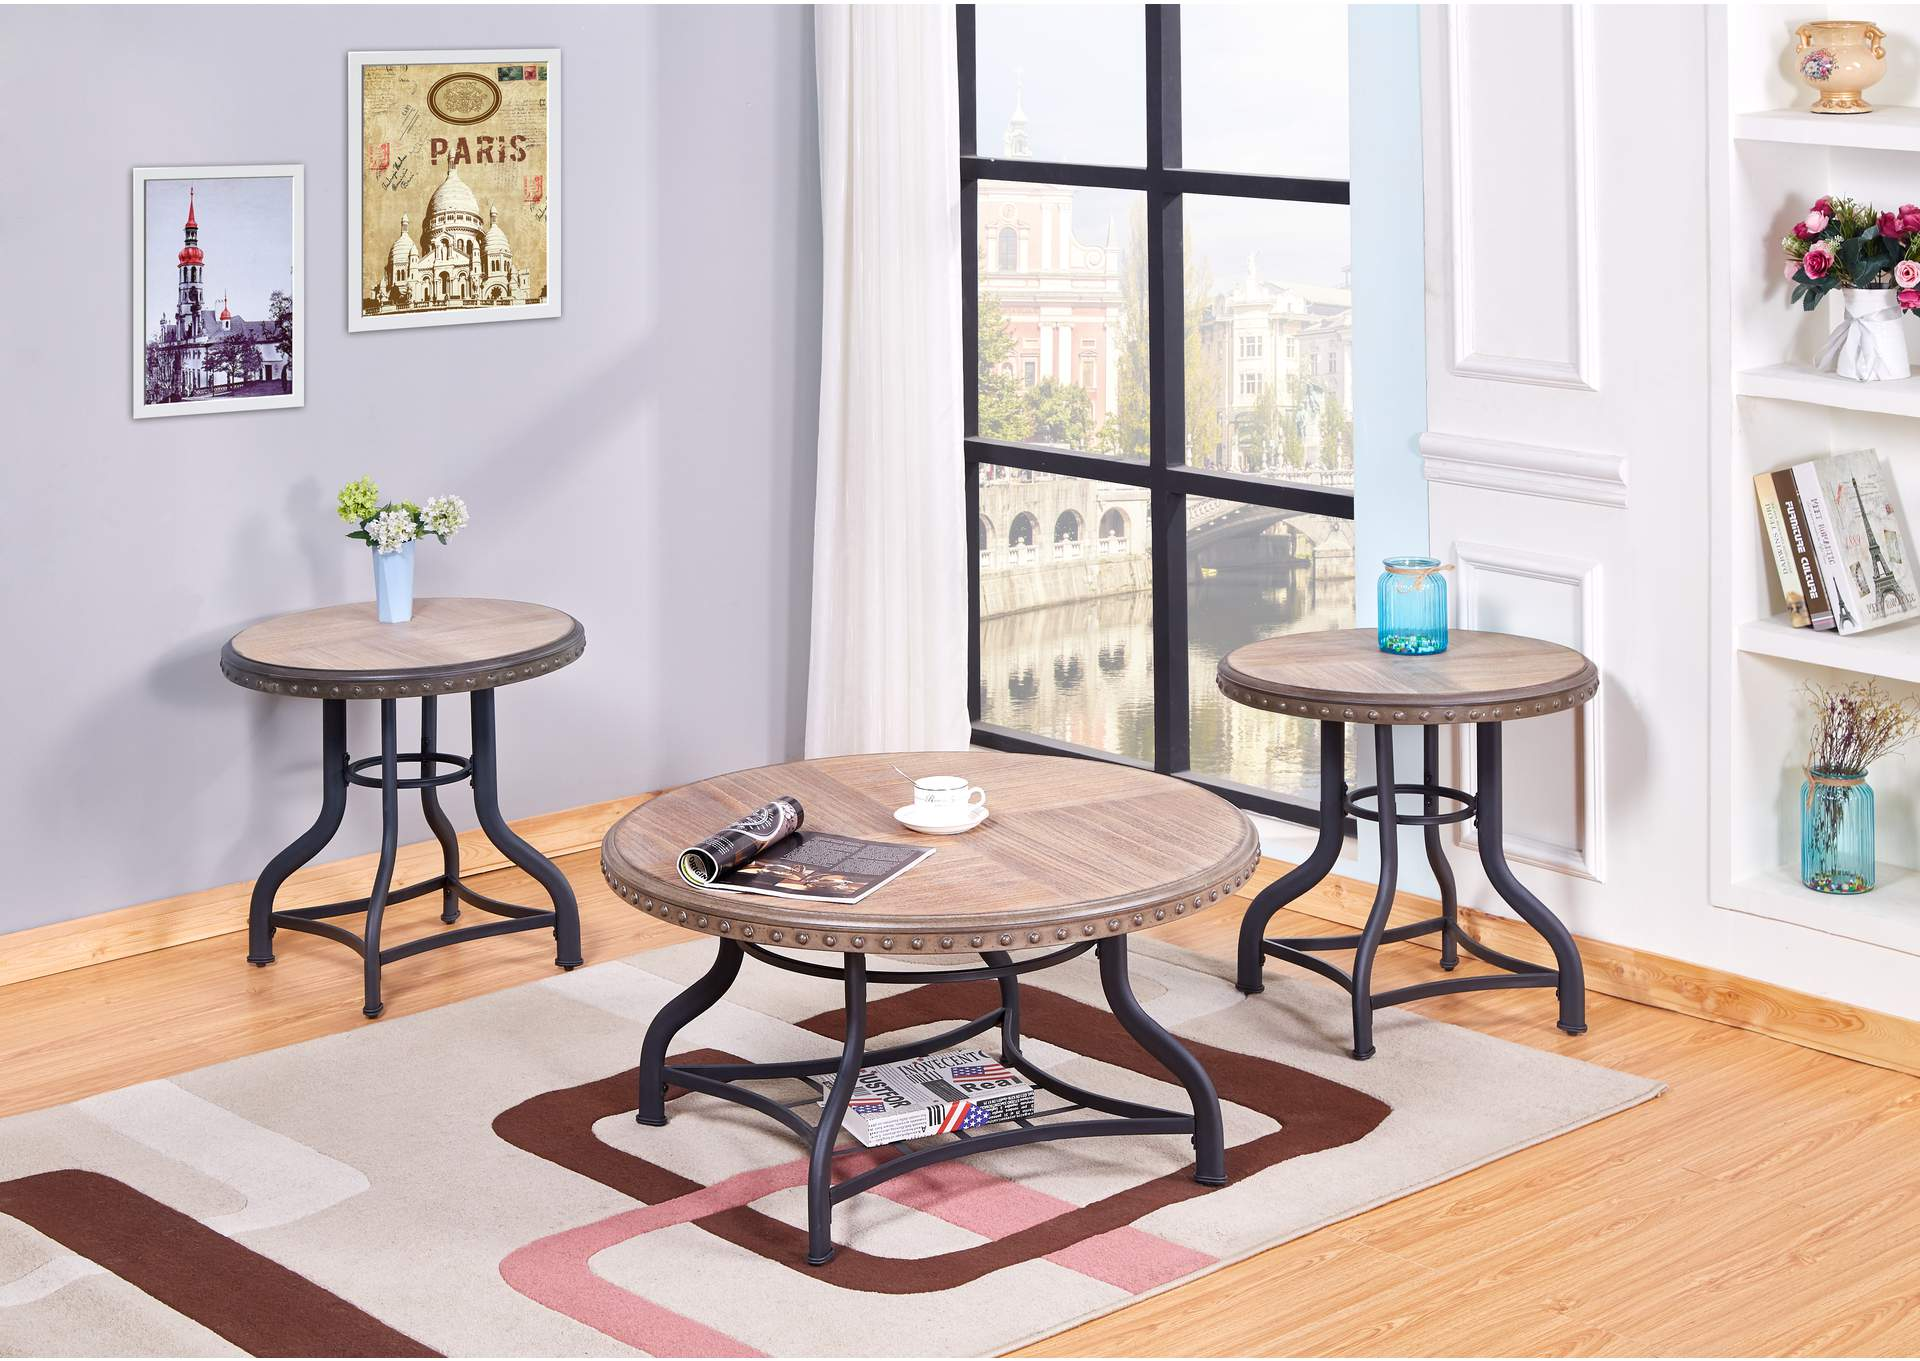 Oak 3 Piece Coffee & End Table Set,Global Trading